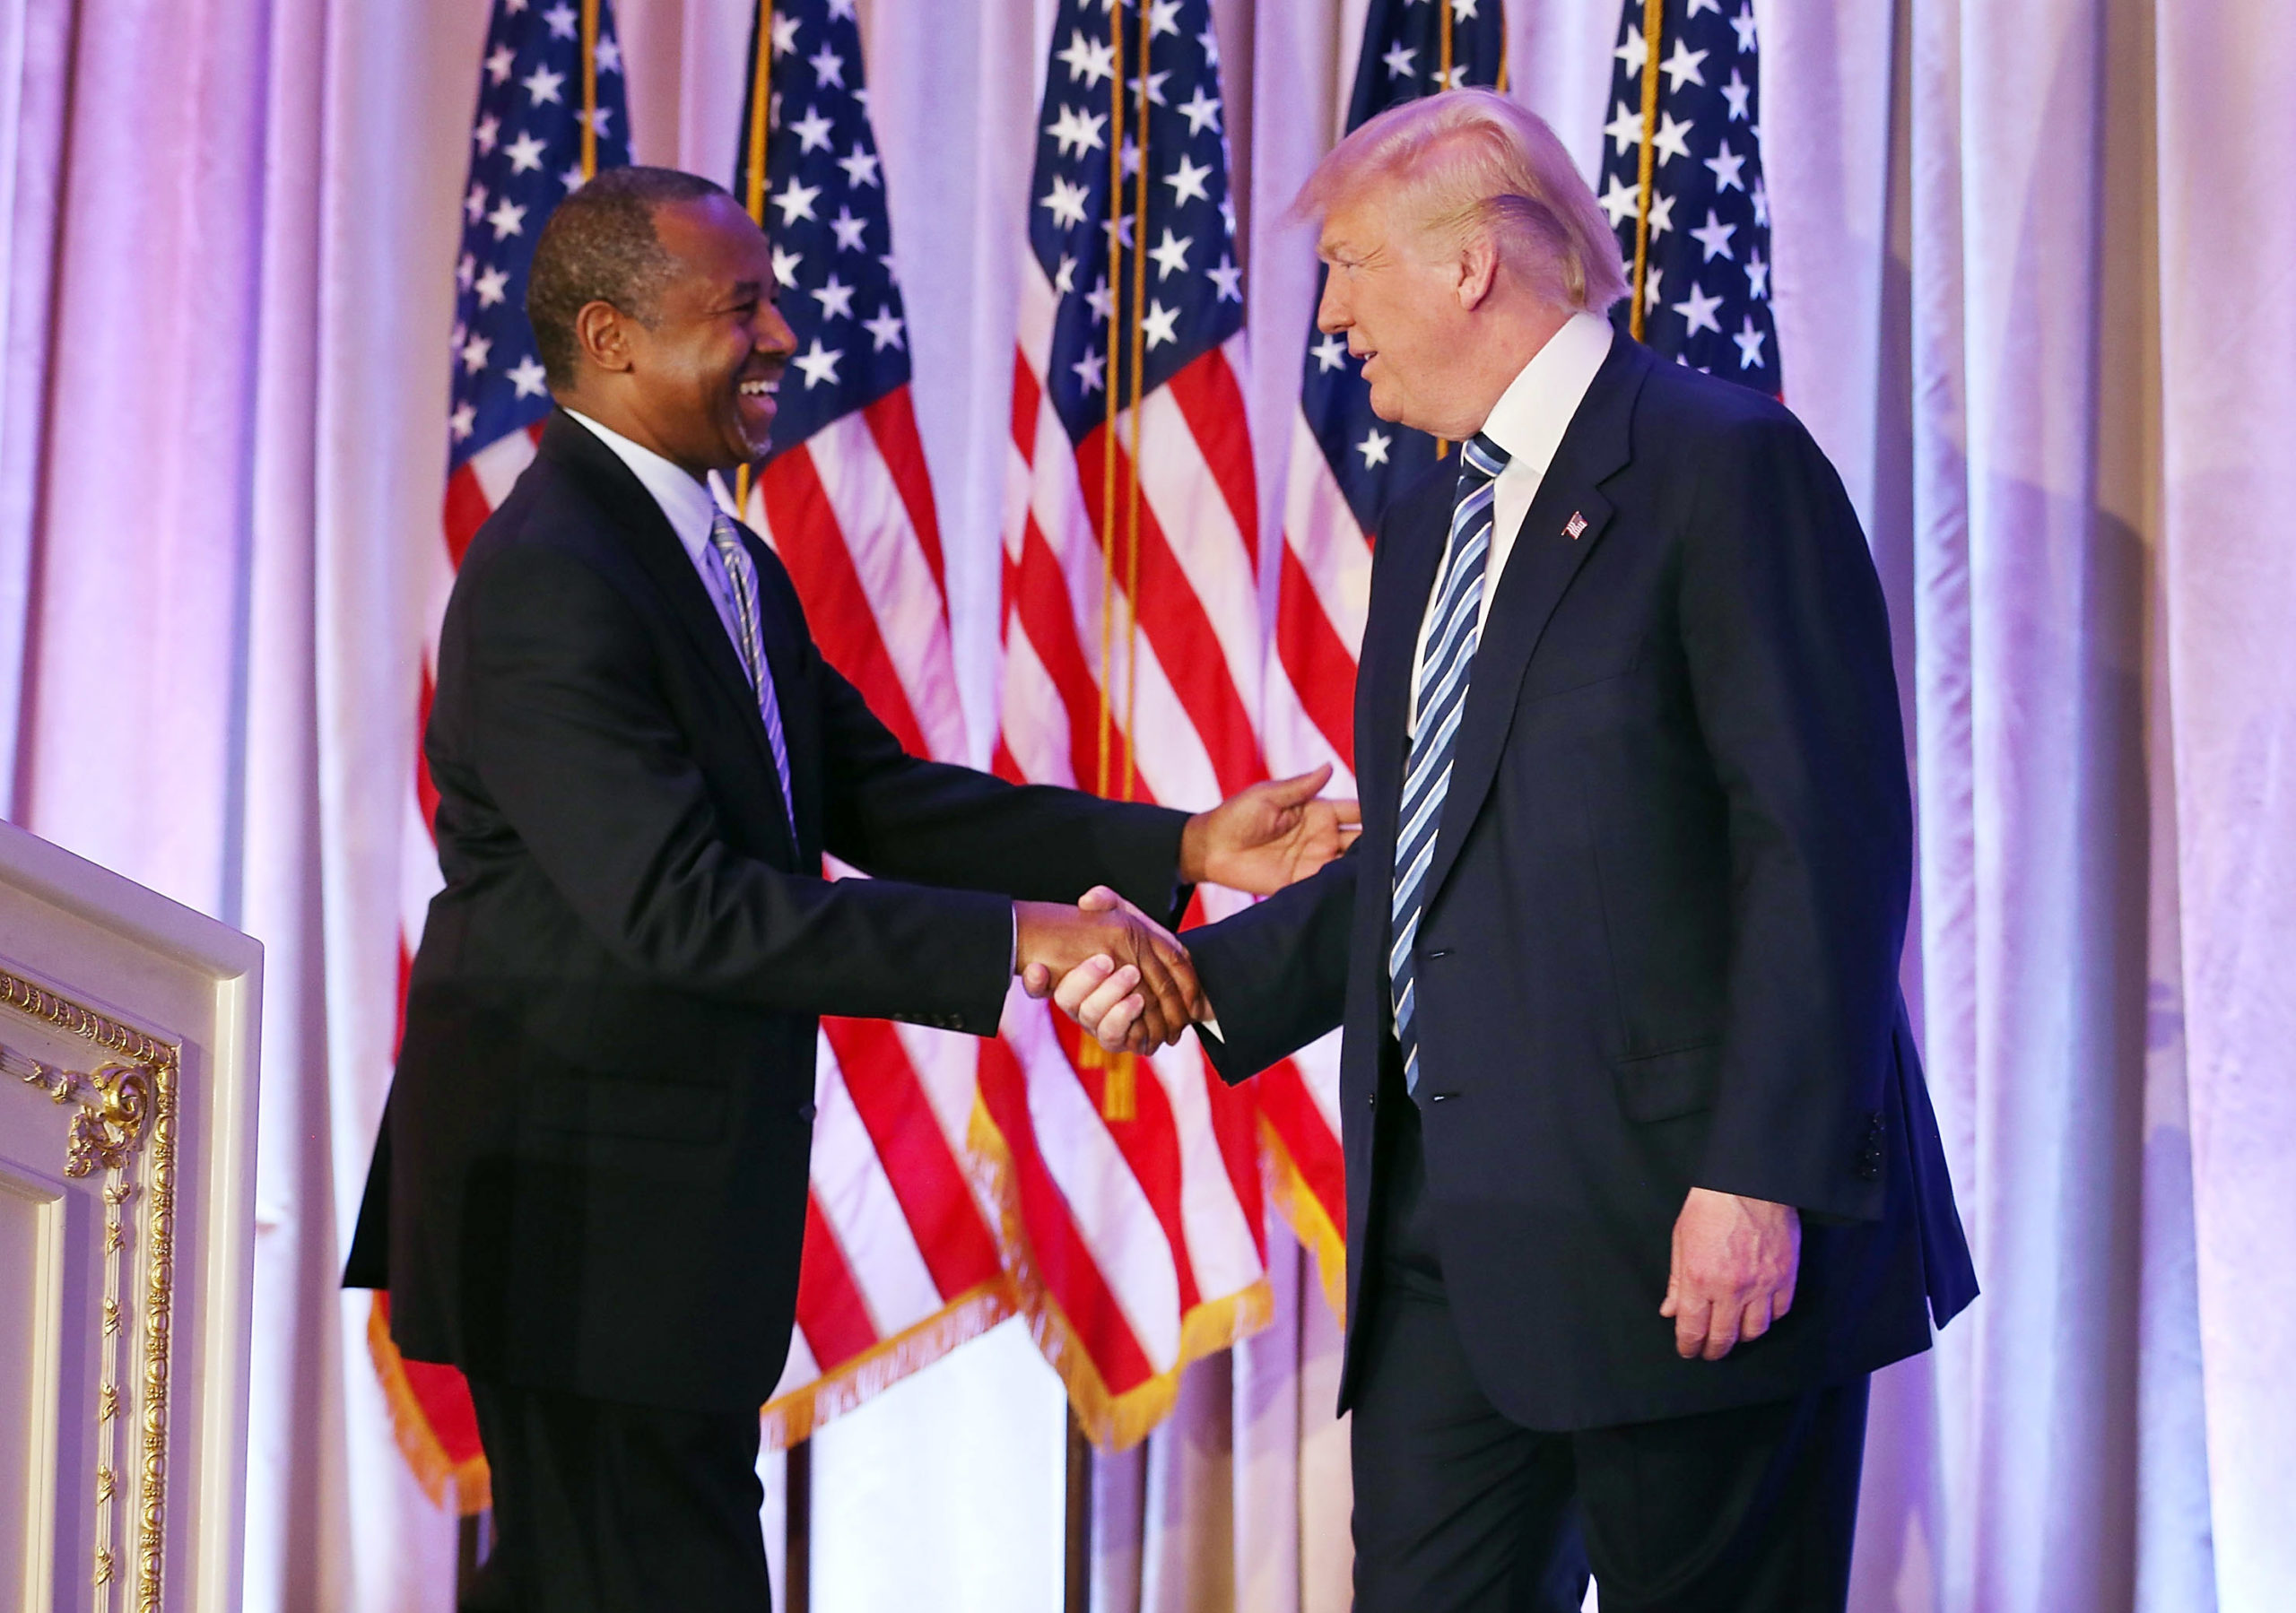 Donald Trump shakes hands with former presidential candidate Ben Carson as he receives his endorsement at the Mar-A-Lago Club on March 11, 2016 in Palm Beach, Florida. (Joe Raedle/Getty Images)